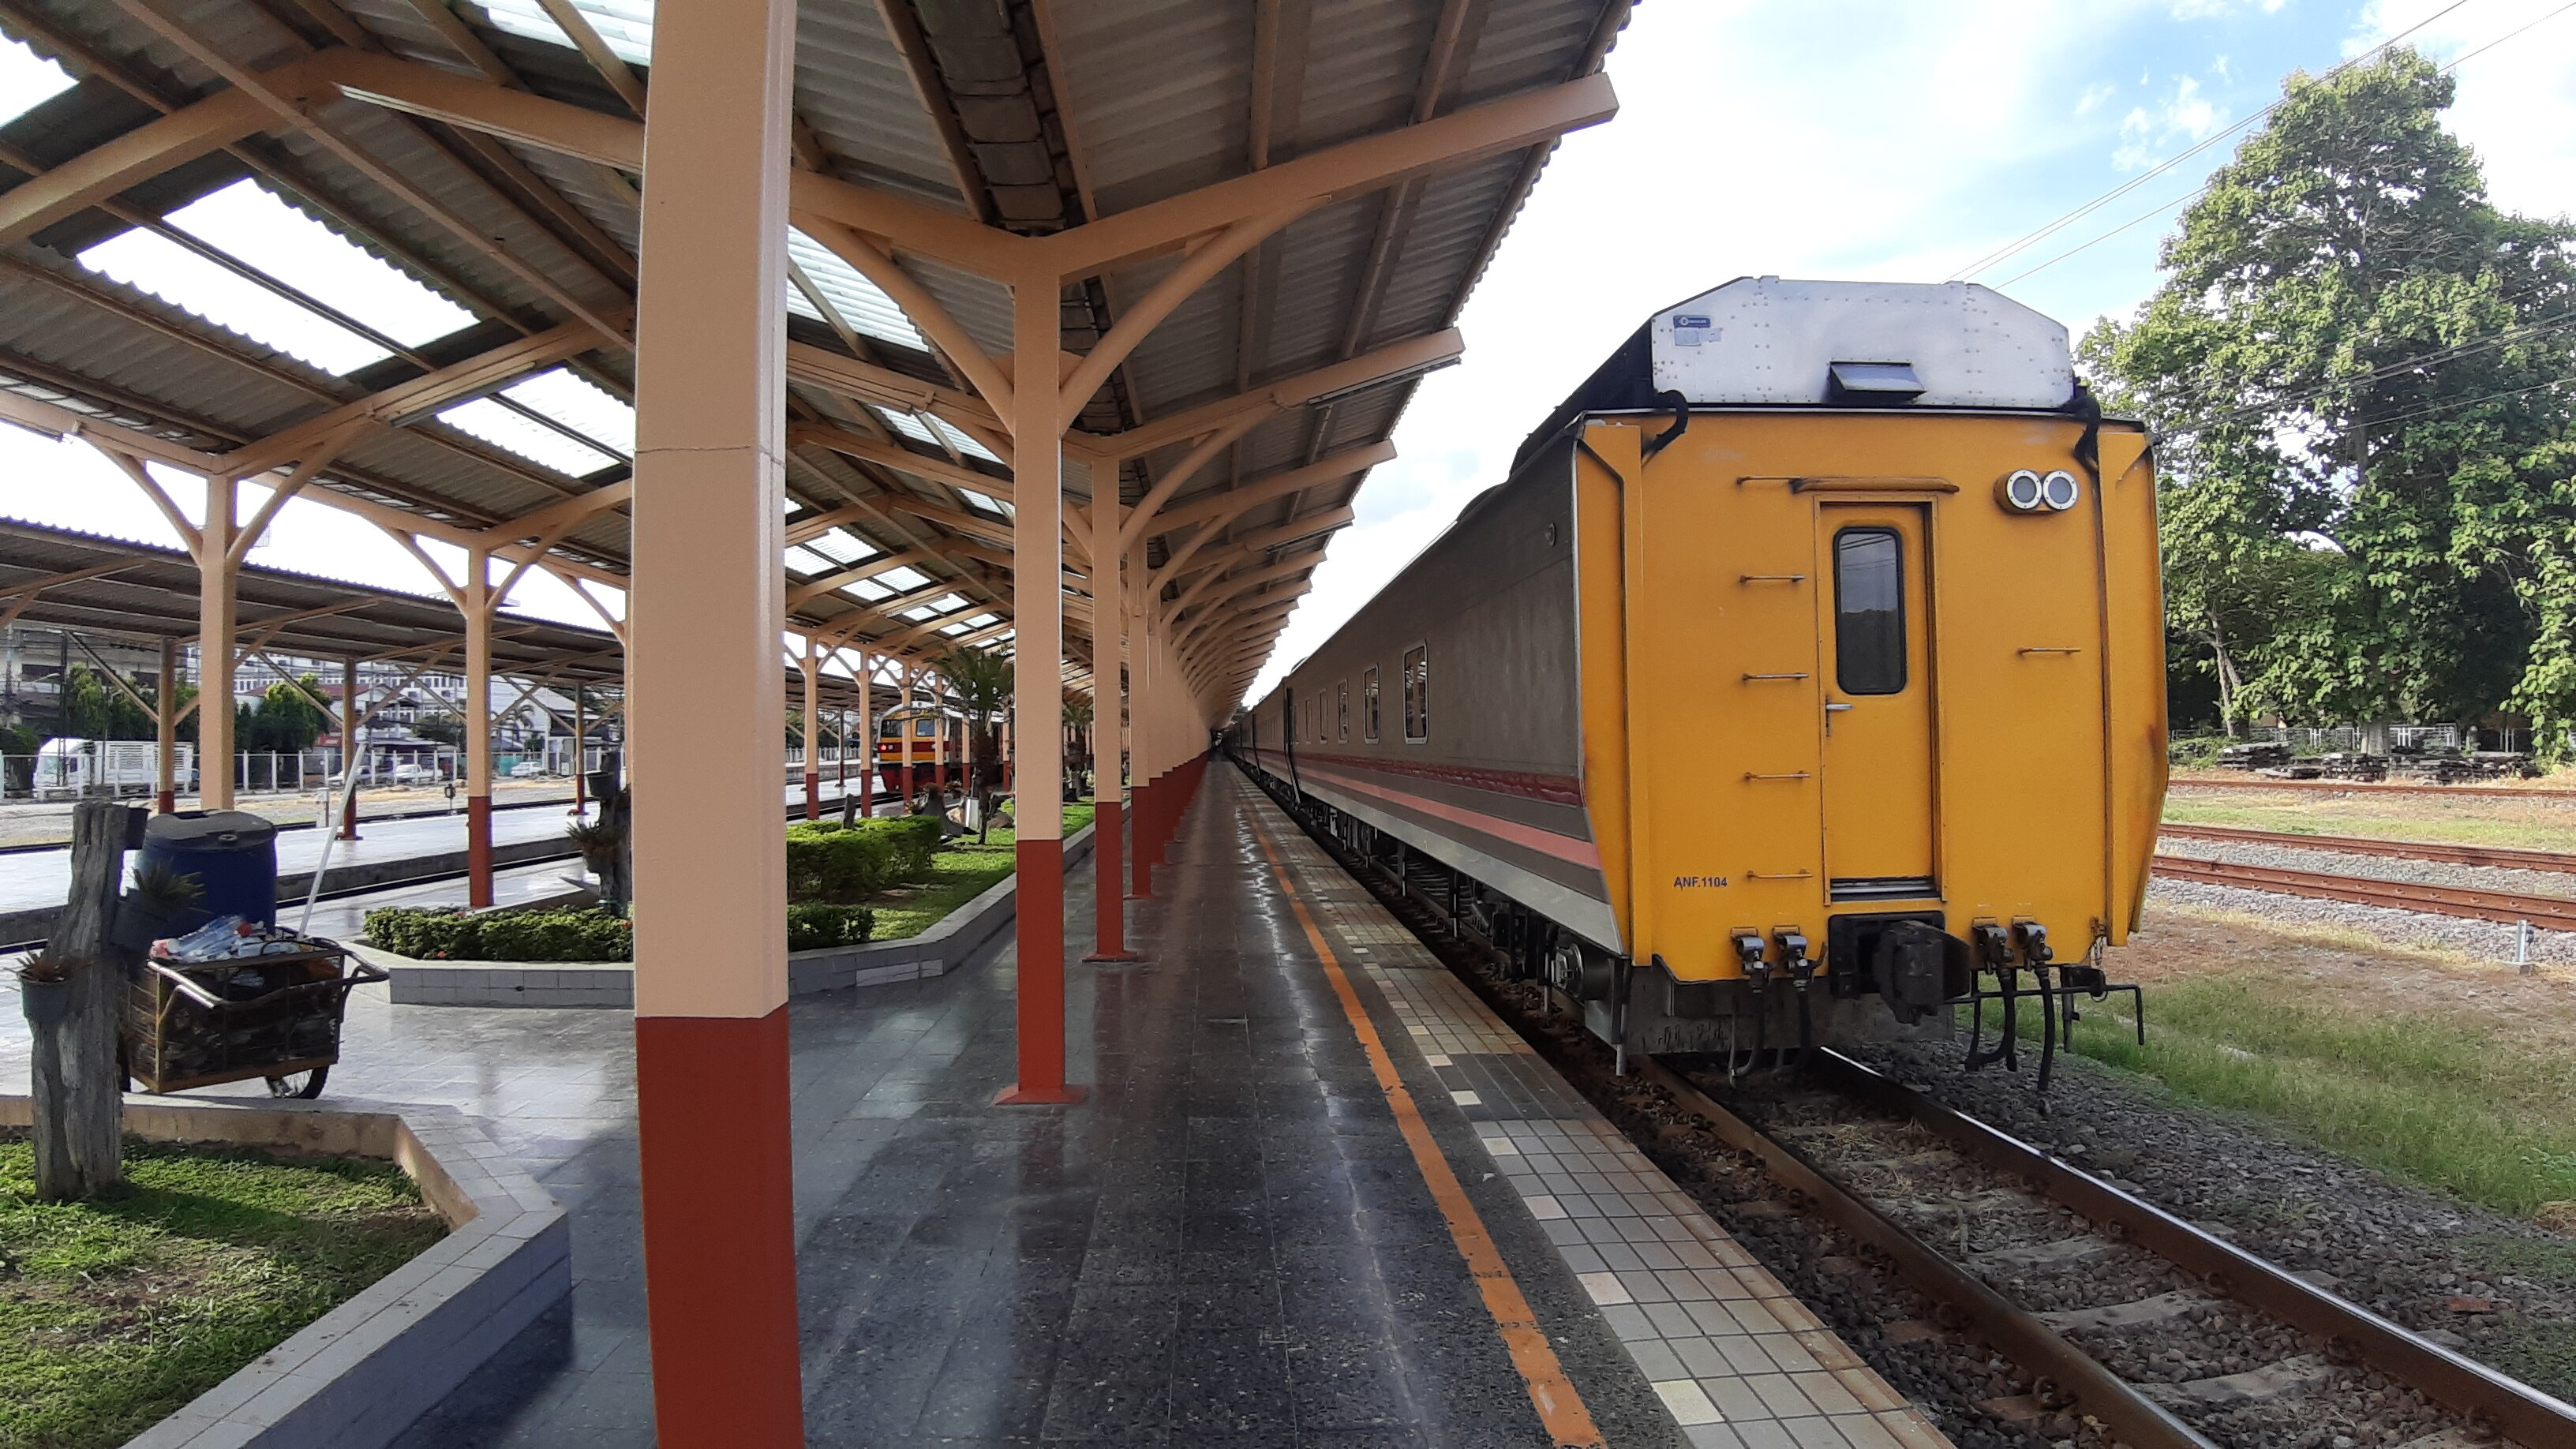 The train sitting in Chiang Mai Railway Station.